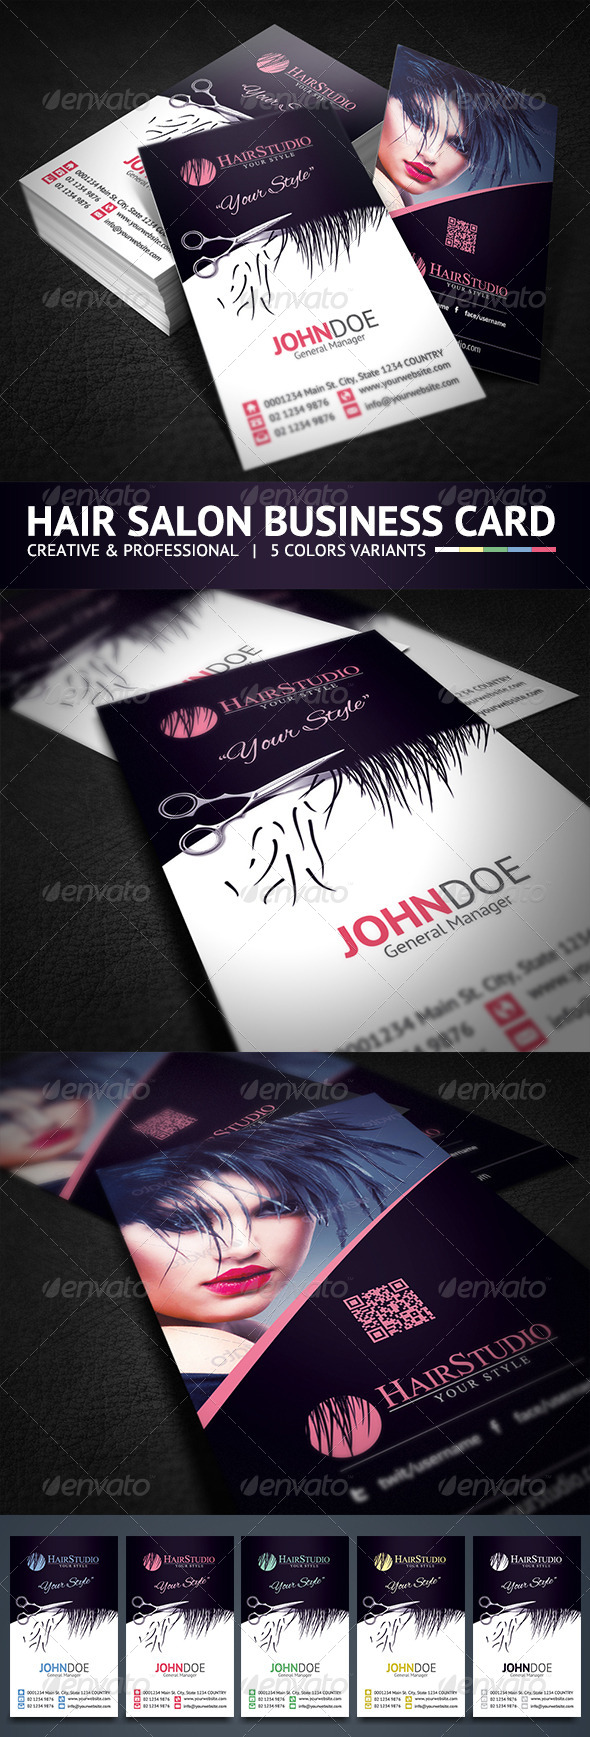 Salon business cards search for jobs related to beauty salon graphics business cards or hire on the worlds largest freelancing marketplace with 13m jobs magicingreecefo Choice Image